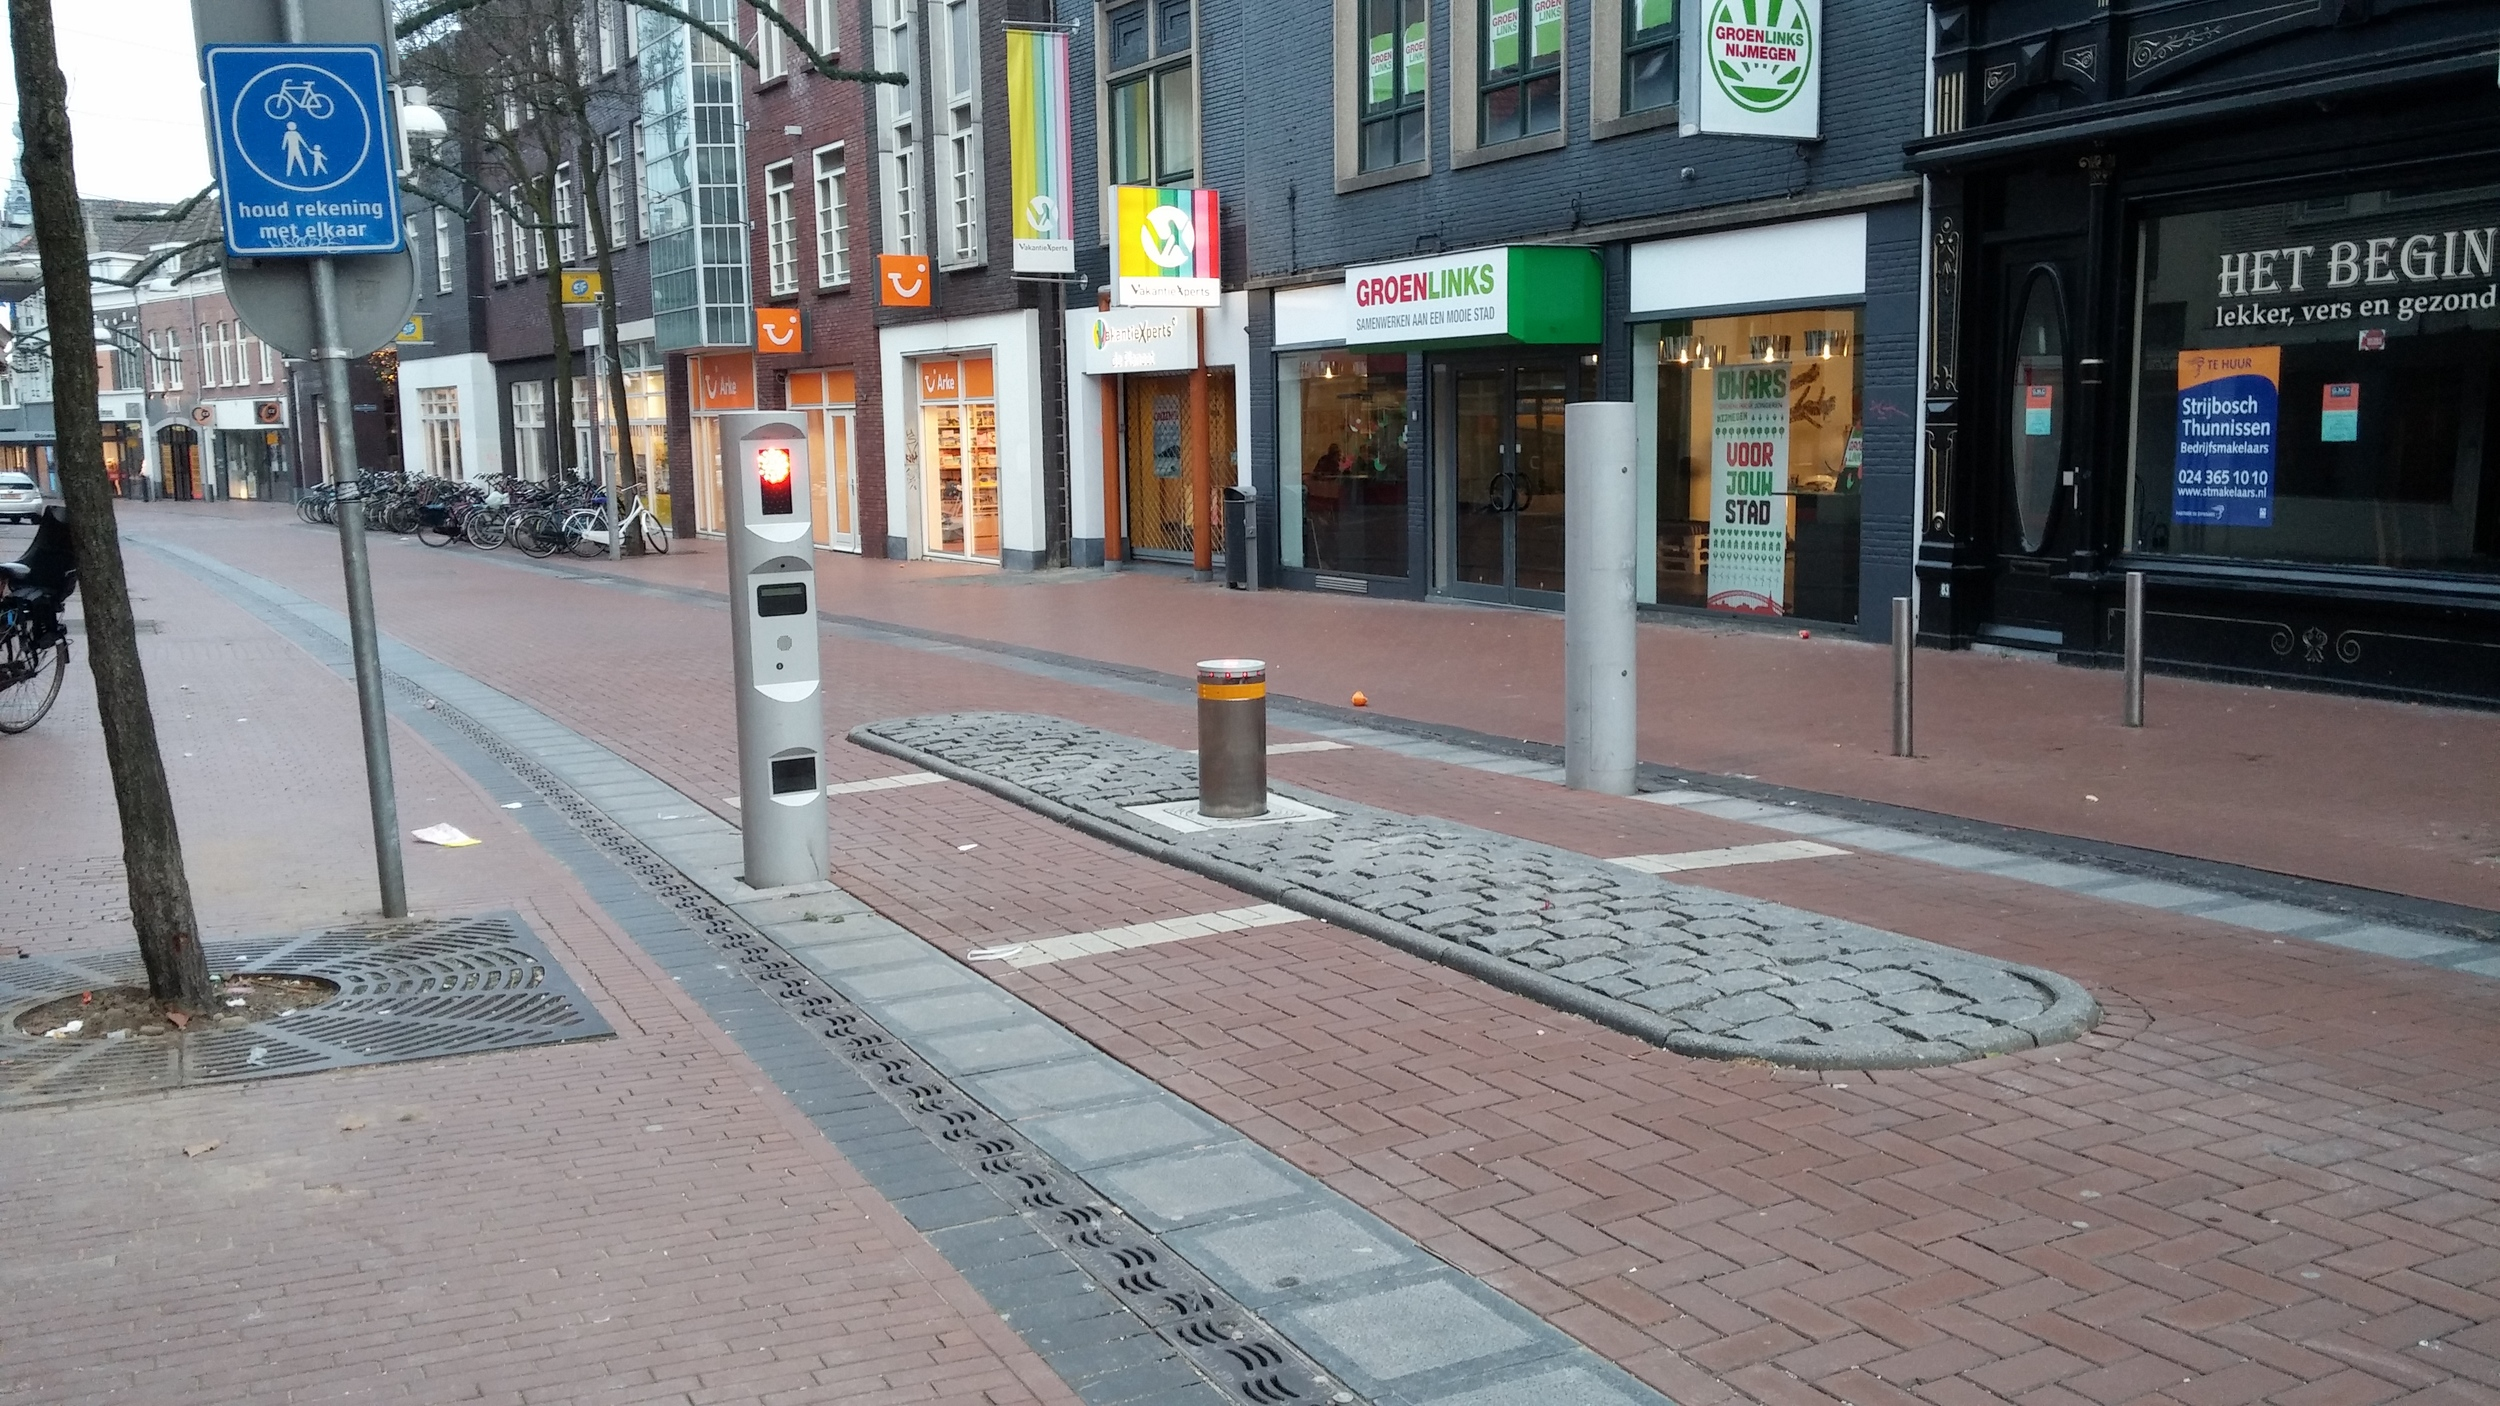 In the busier streets of downtown Nijmegen, they have these steel poles that go up and down to allow cars to go through, in addition to stop signs.